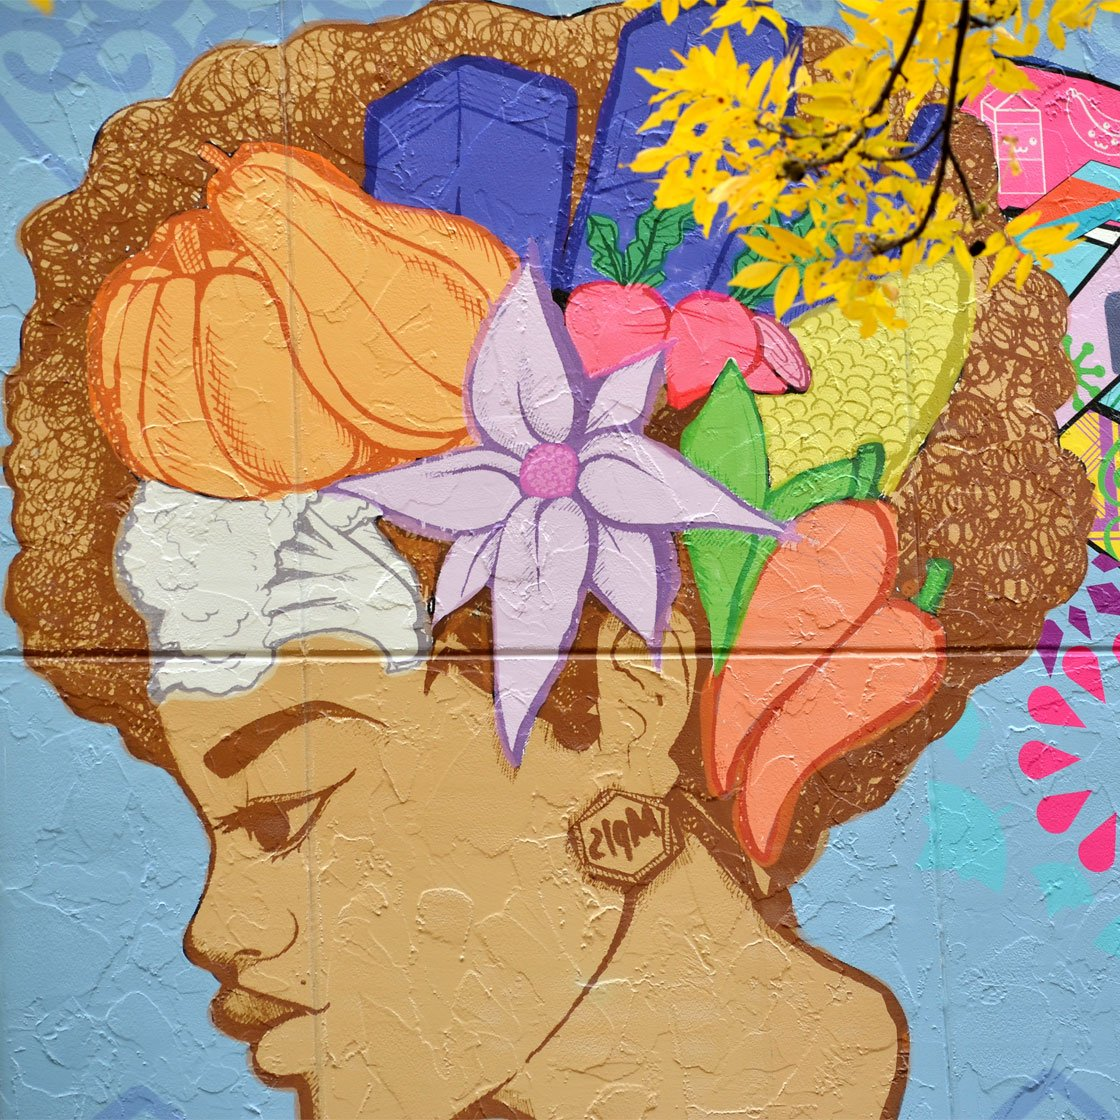 Detail of a large-scale colorful mural of a woman with long flowing colorful hair